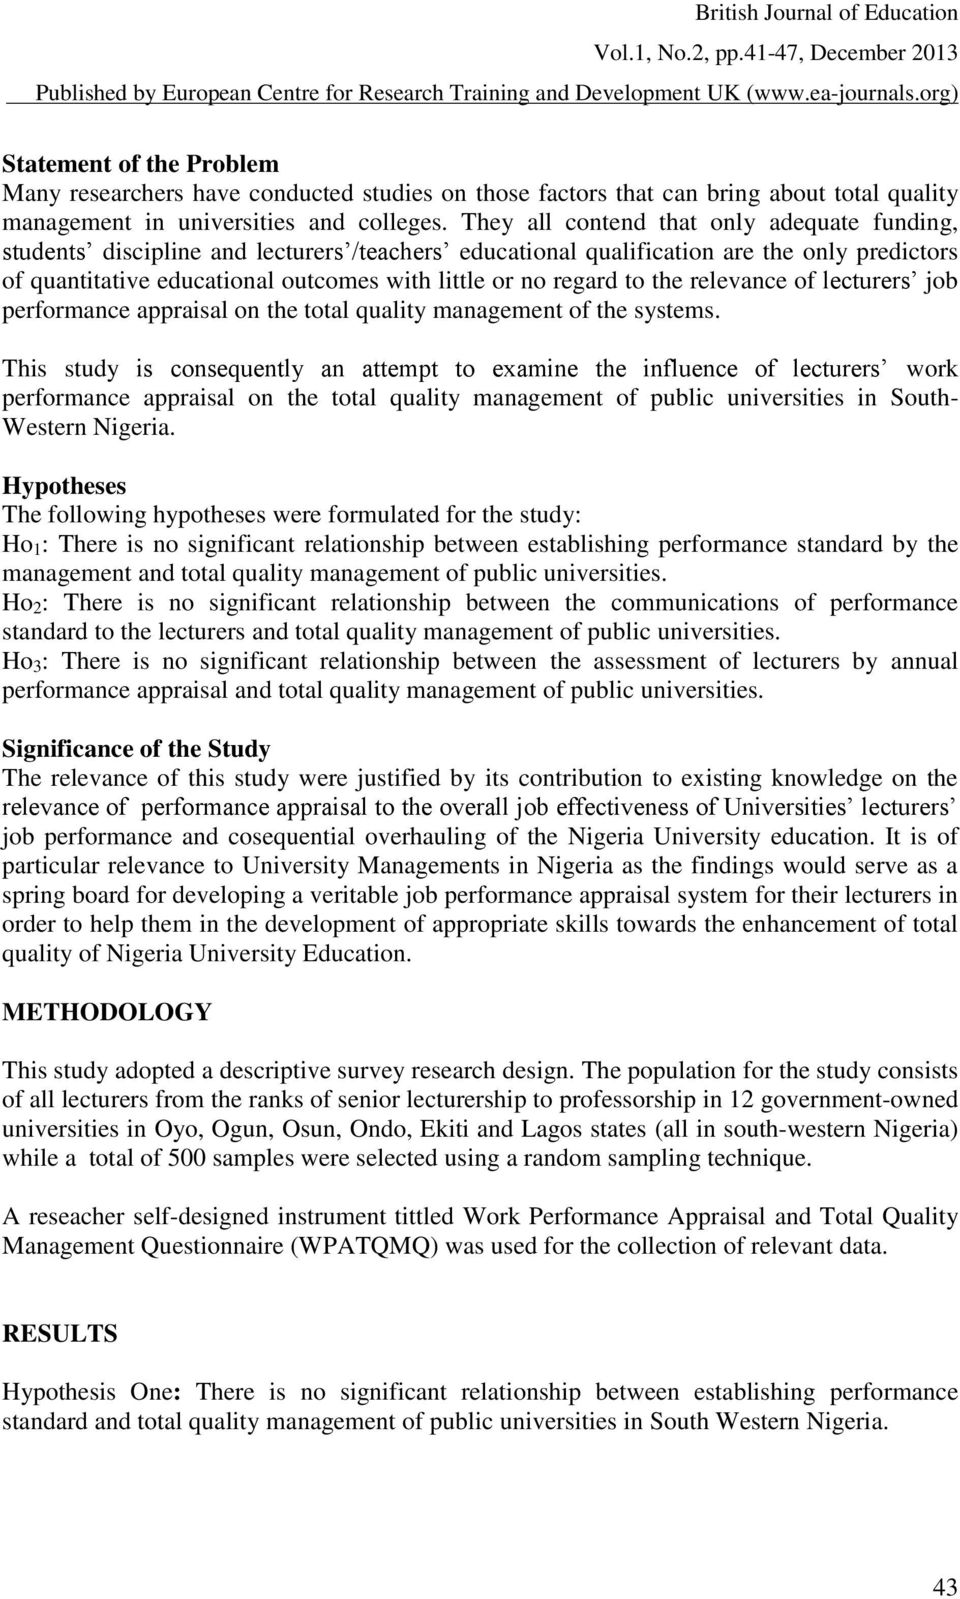 regard to the relevance of lecturers job performance appraisal on the total quality management of the systems.